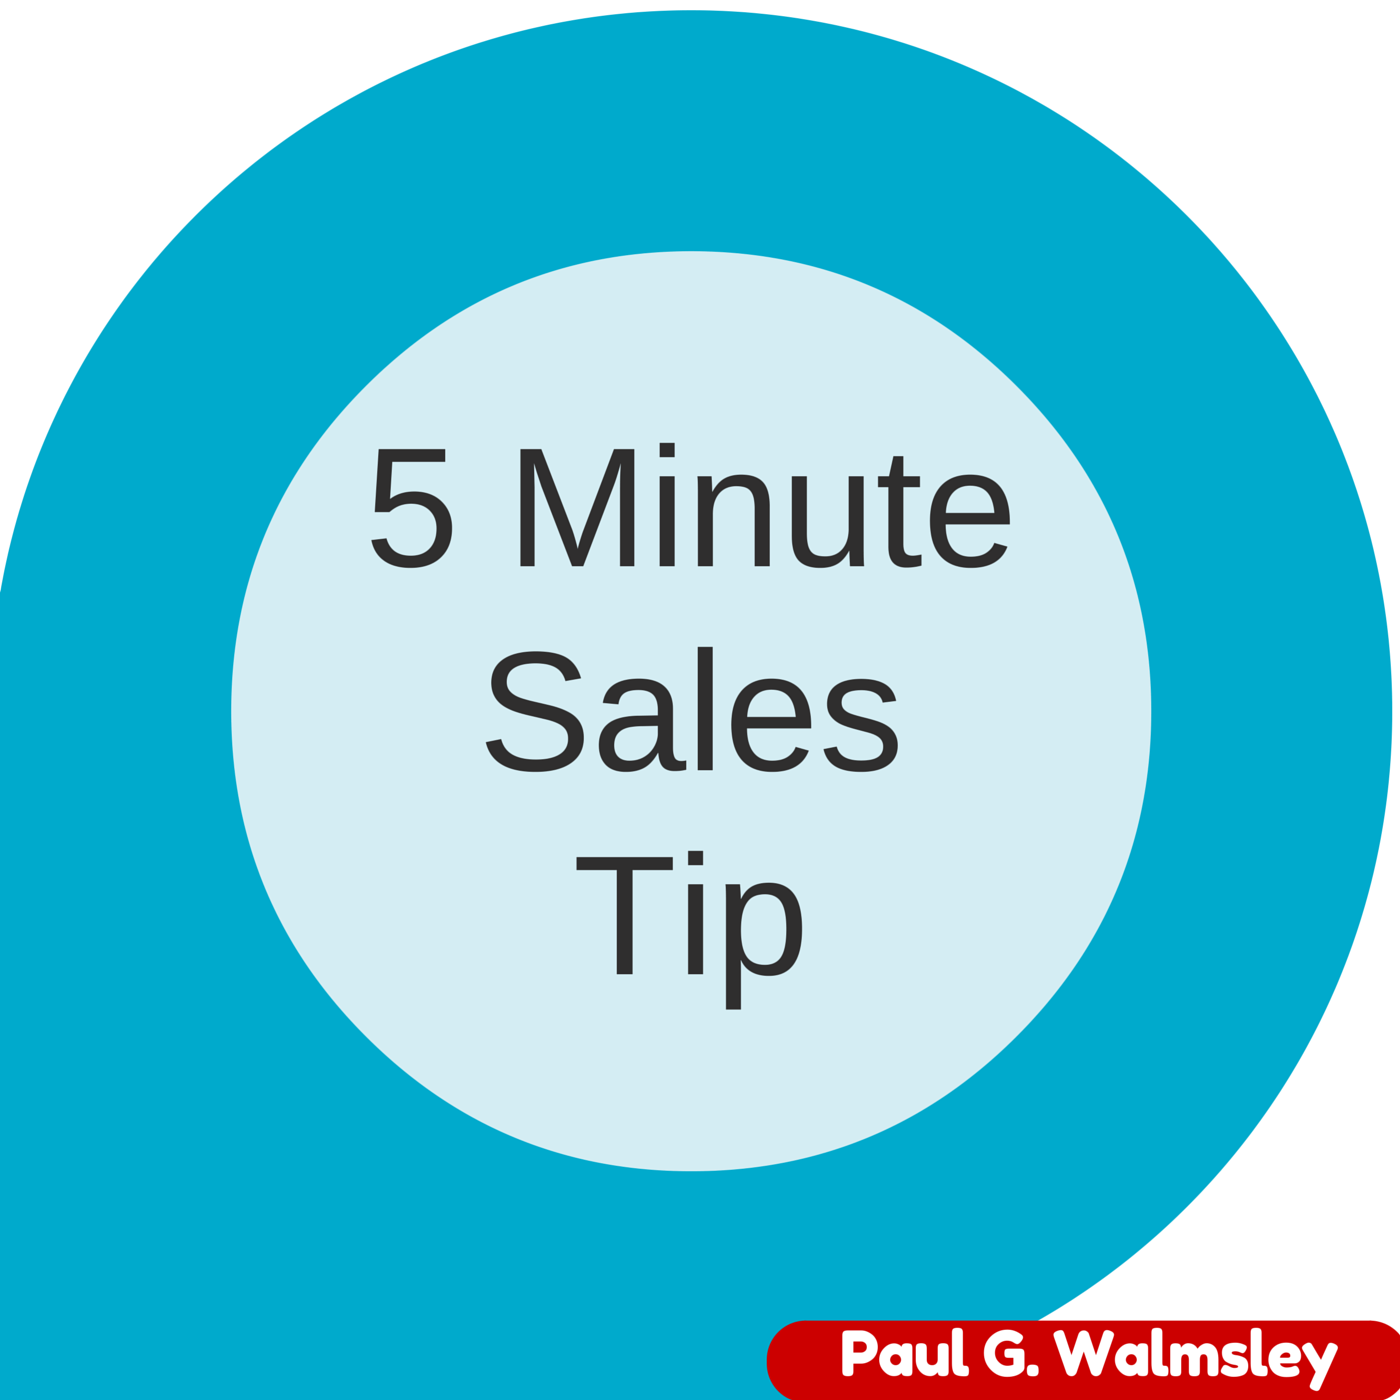 Episode 35: 5 Minute Sales Tip - Don't Put Pressure On Prospects